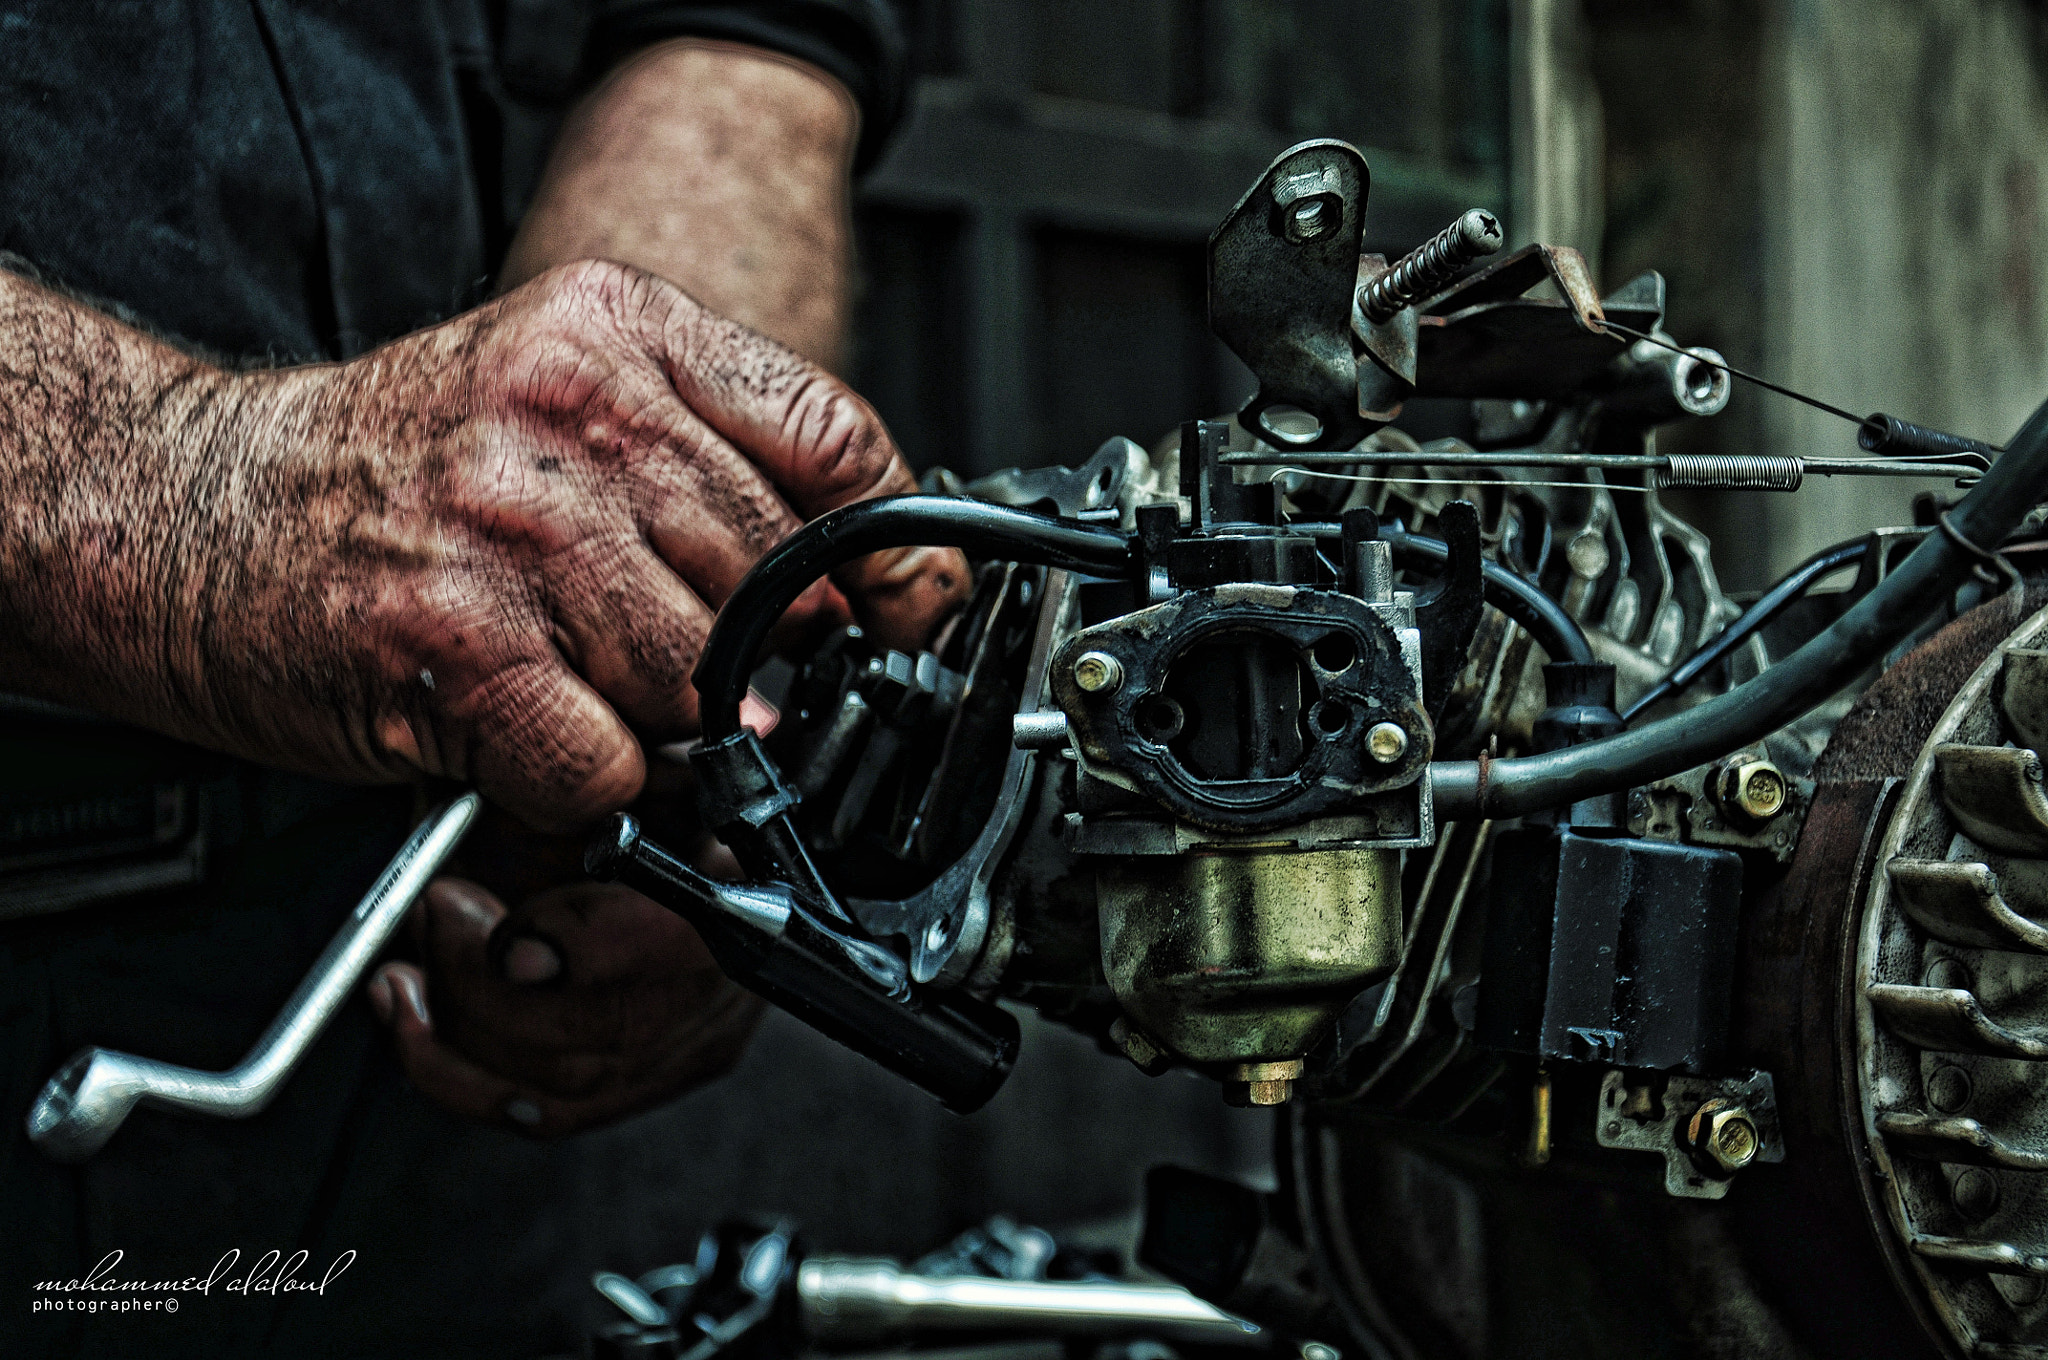 Photograph Mechanical by Mohammed Al Aloul on 500px